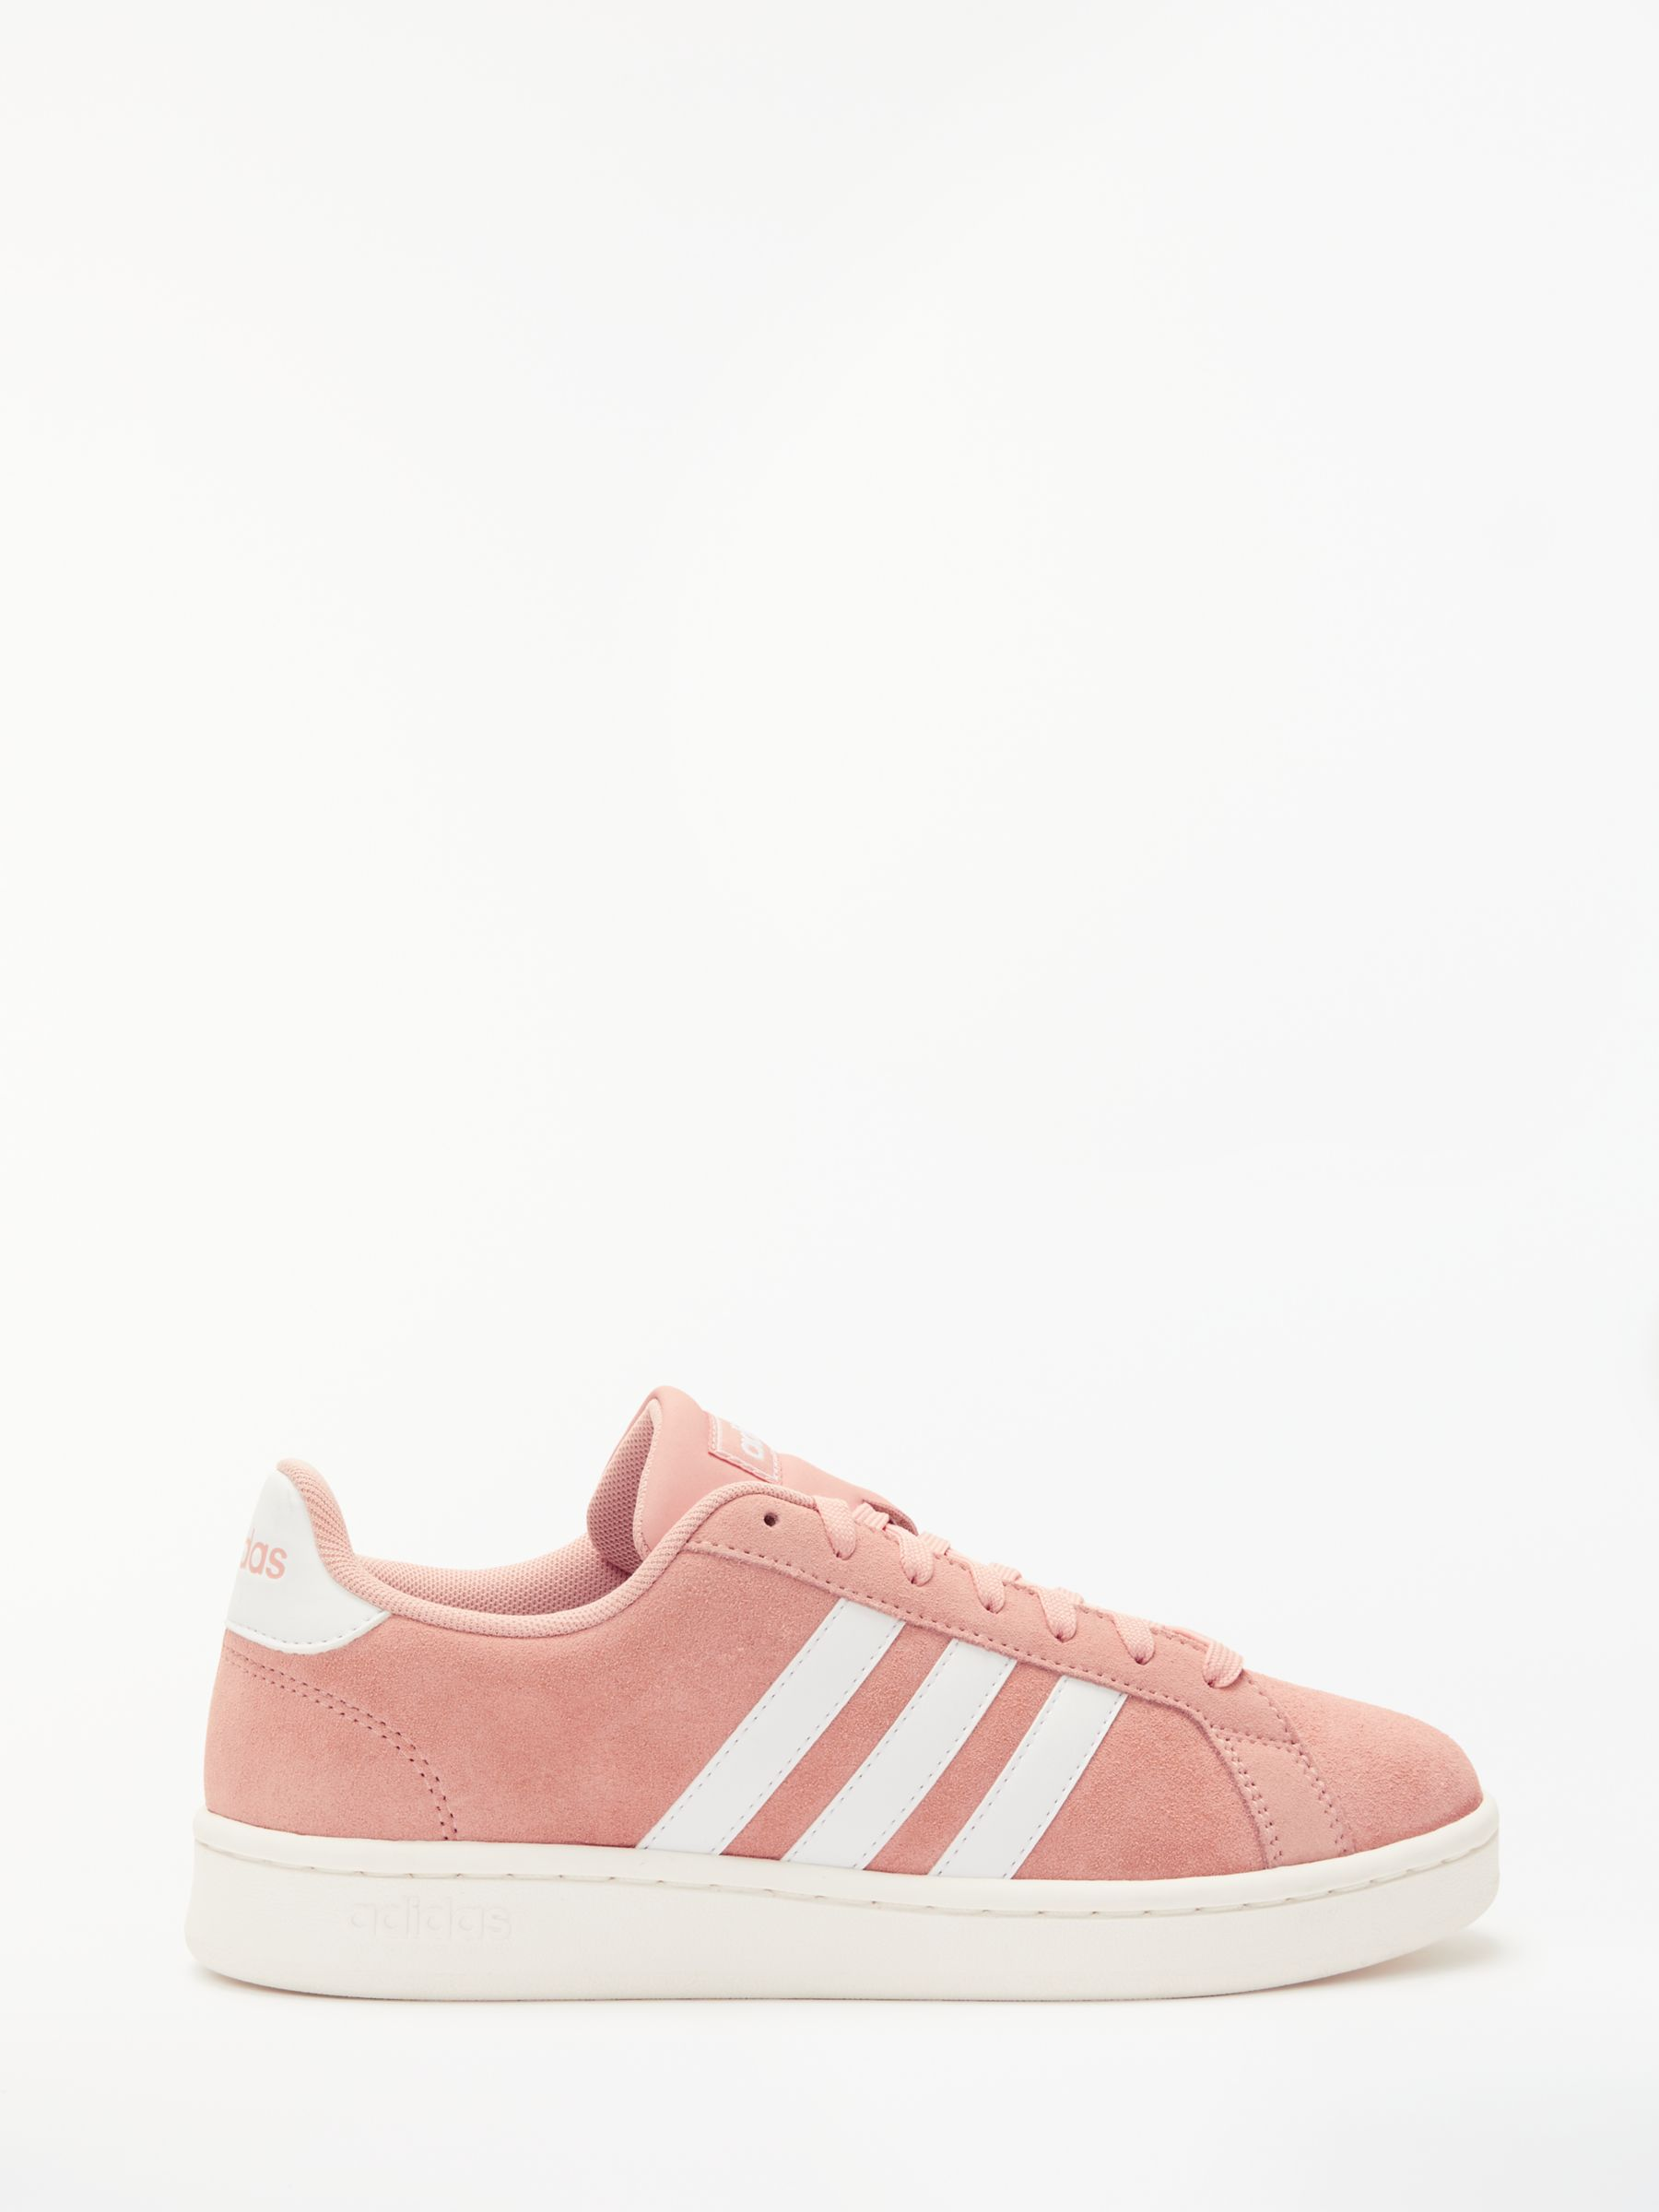 adidas Grand Court Women's Trainers, Dust PinkFTWR White at